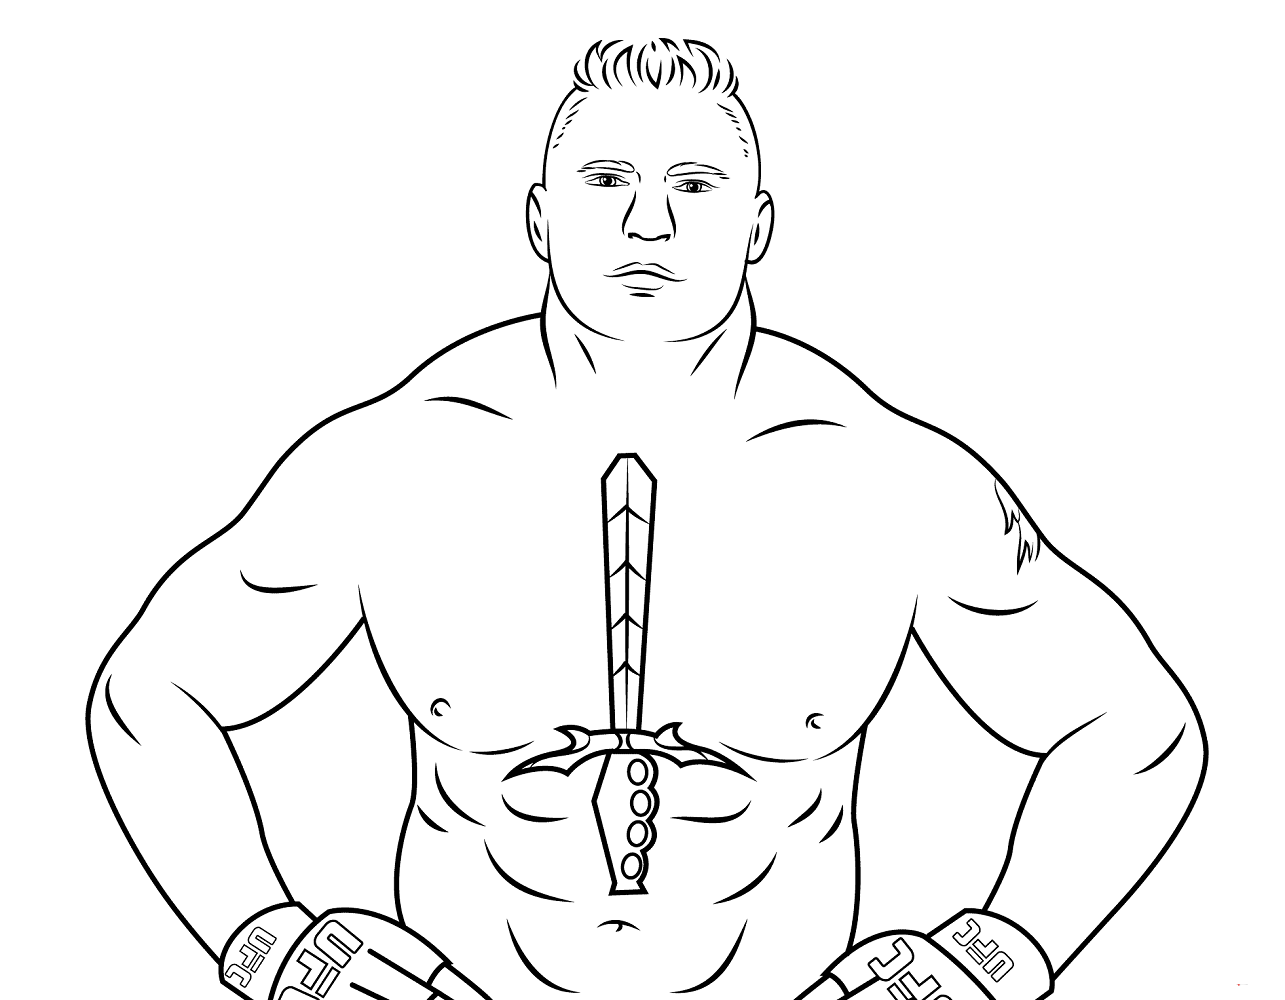 Brock Lesnar Coloring Page: